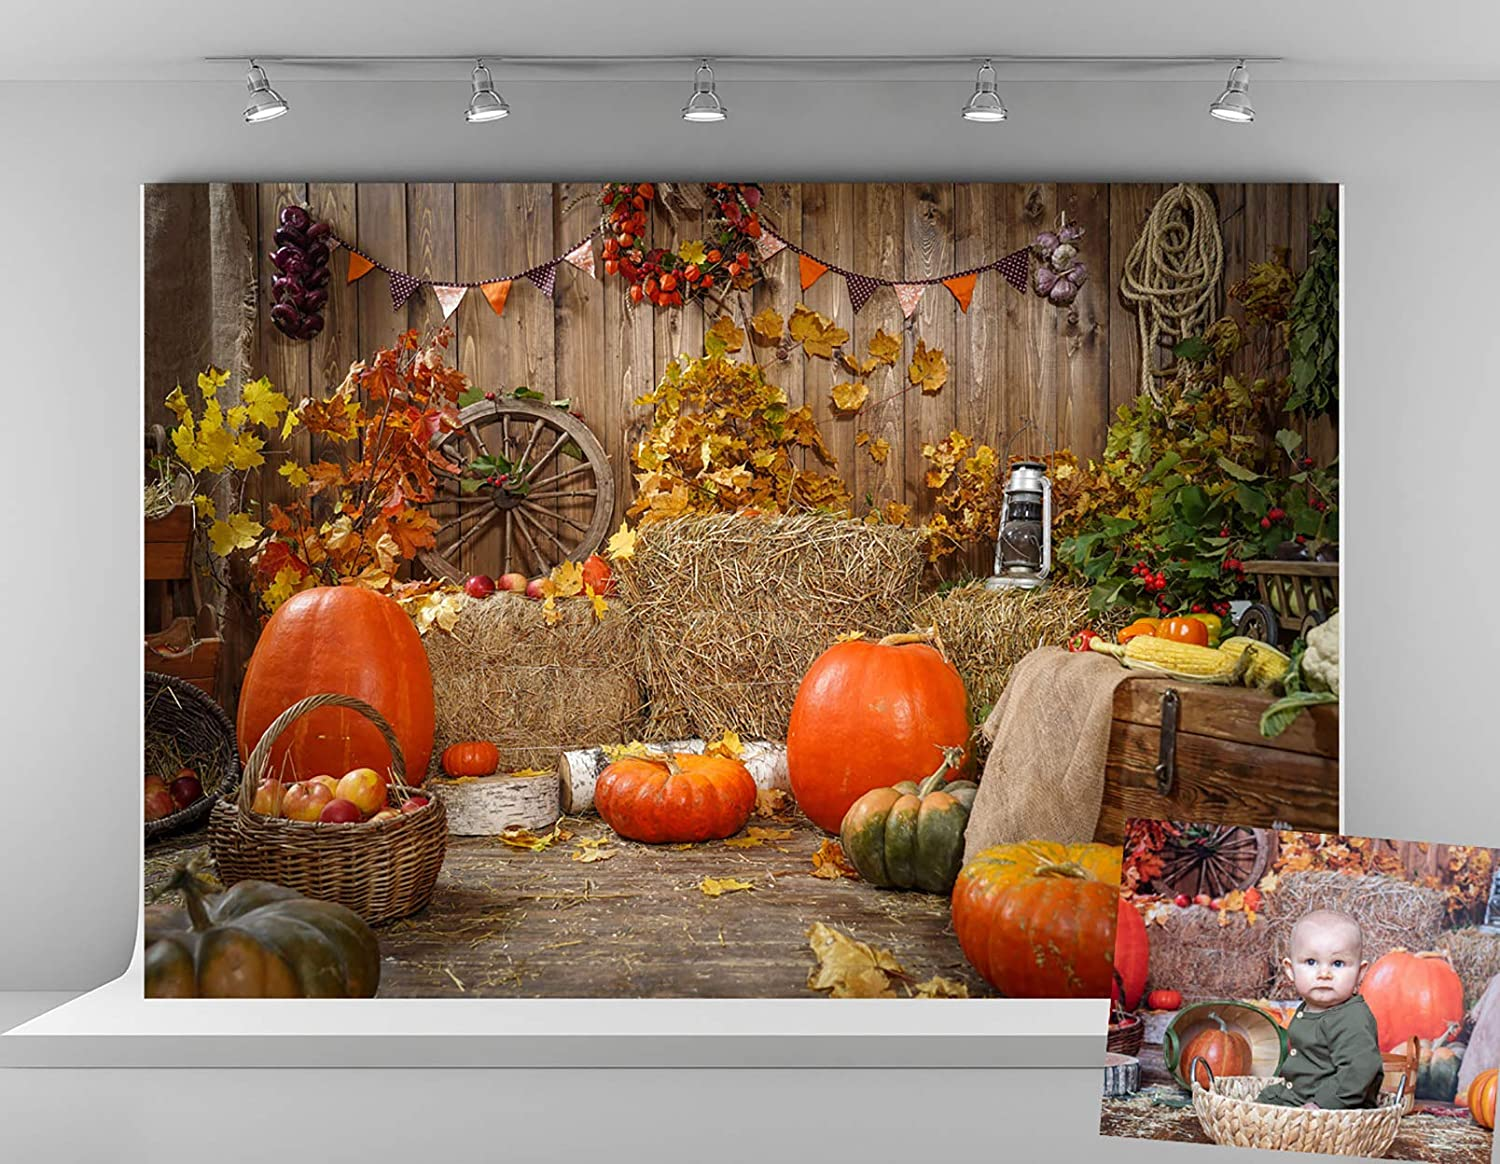 Kate 7x5ft Microfiber Thanksgiving Gifts Backdrops for Photography Halloween Pumpkin Backgrounds Autumn Haystack Decoration Backdrop Rustic Wood Wall Photo Background